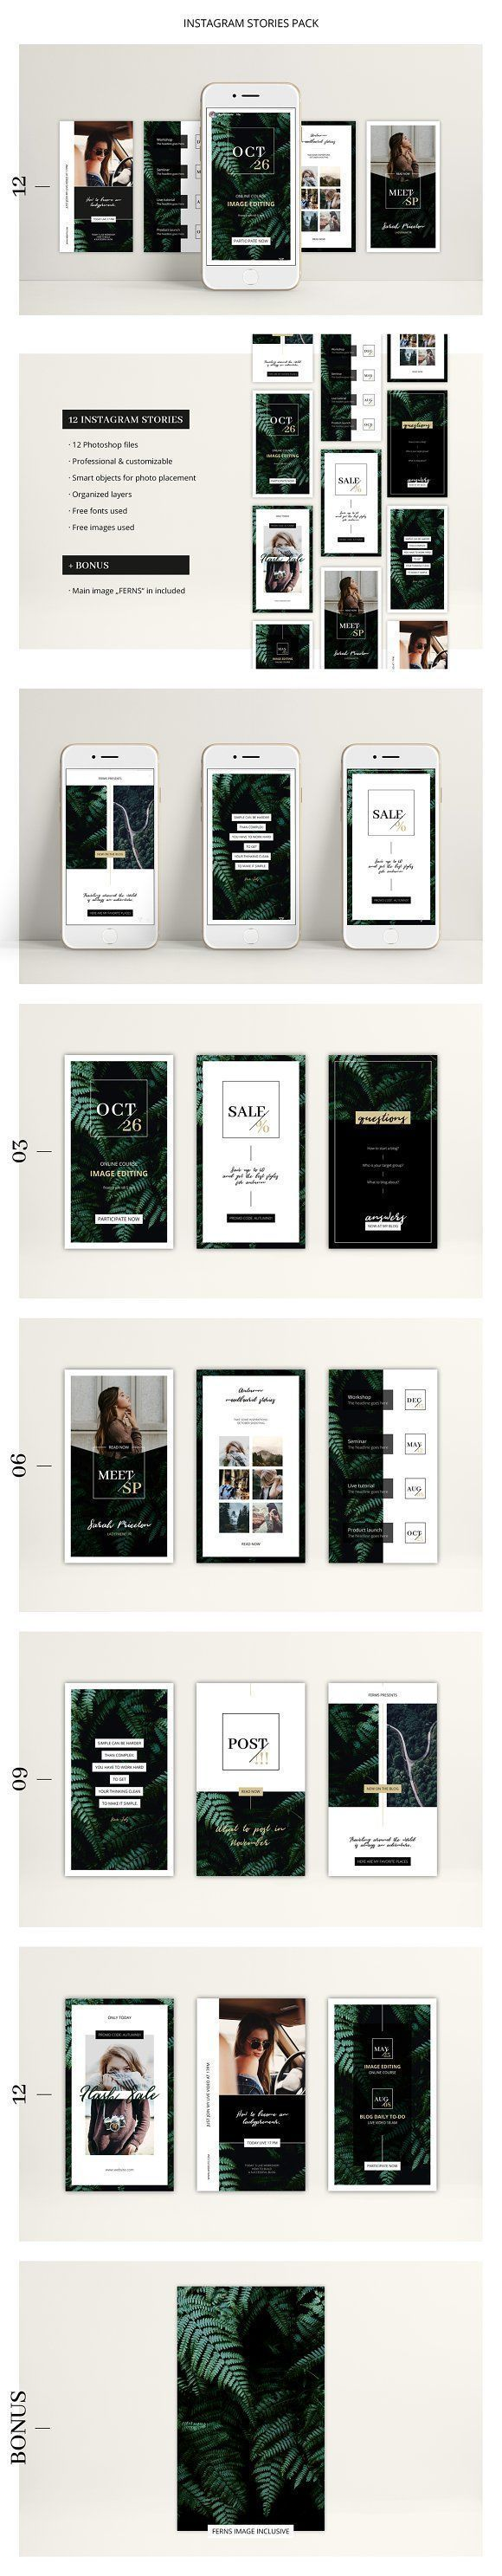 FERNS Instagram Stories Pack by AgataCreate on @creativemarket Social media creative design posts for promotion marketing design templates. Use it for quotes, tips, photos, etiquette, ideas, posts or for presentation your business agency, products sales or designs. Ready to use on Instagram, Pinterest, Facebook, Twitter your Blog or Website. #socialmedia #socialmediamarketing #instagram #design #stories #post #pinterest #feminine #story